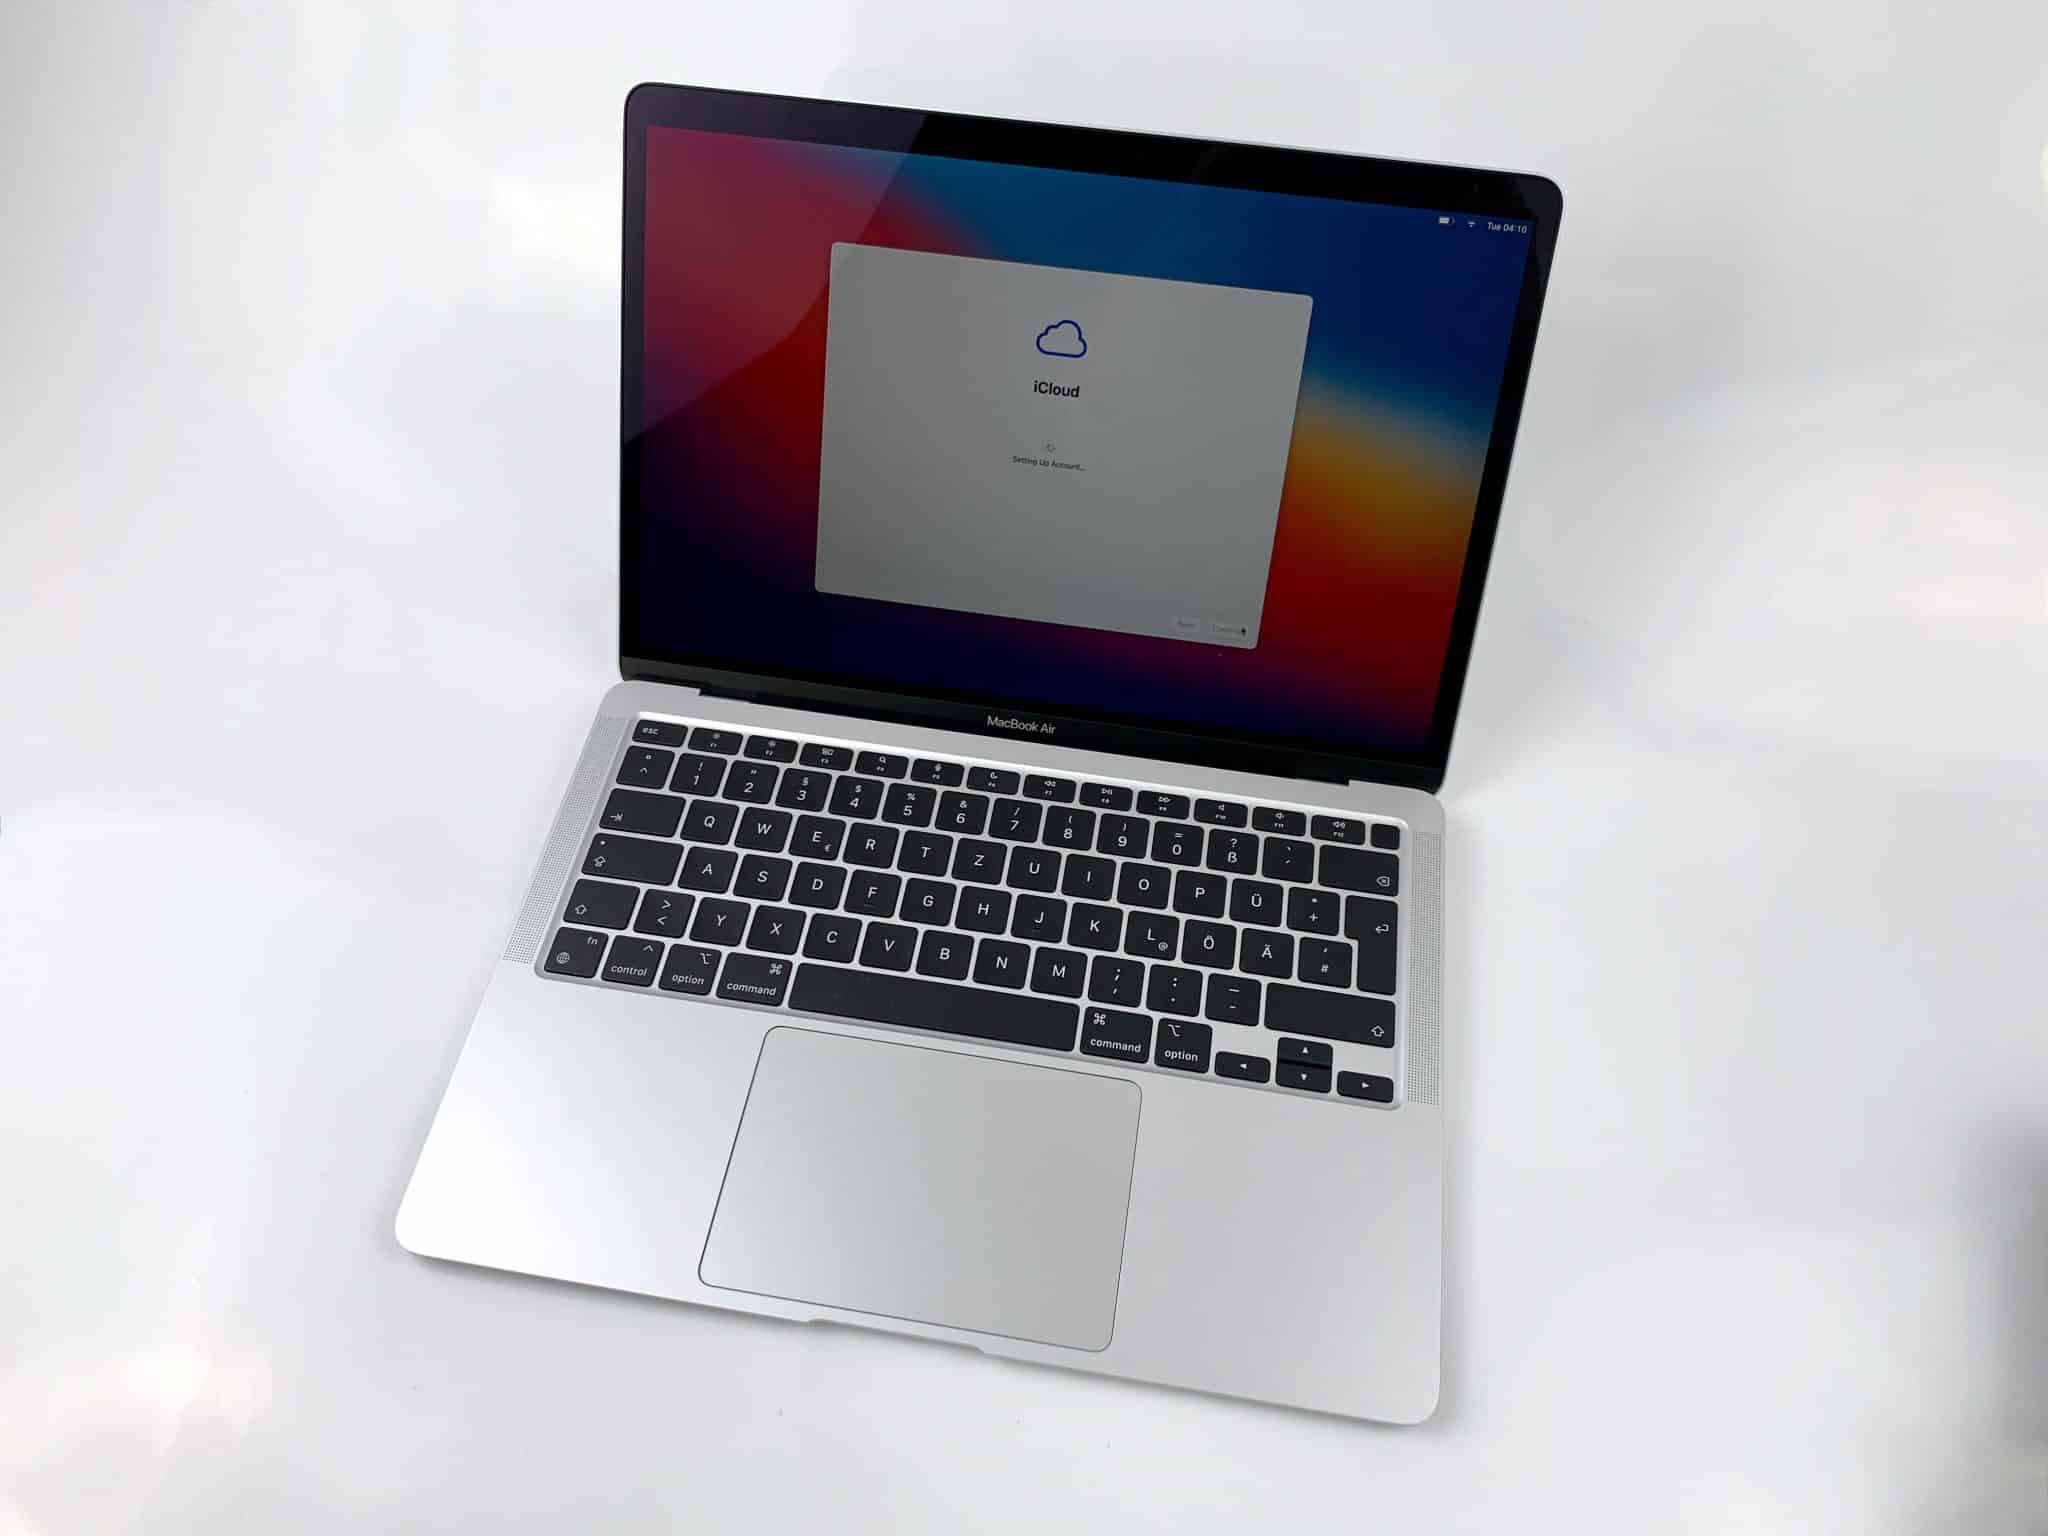 Issues with Macbook M1 Air